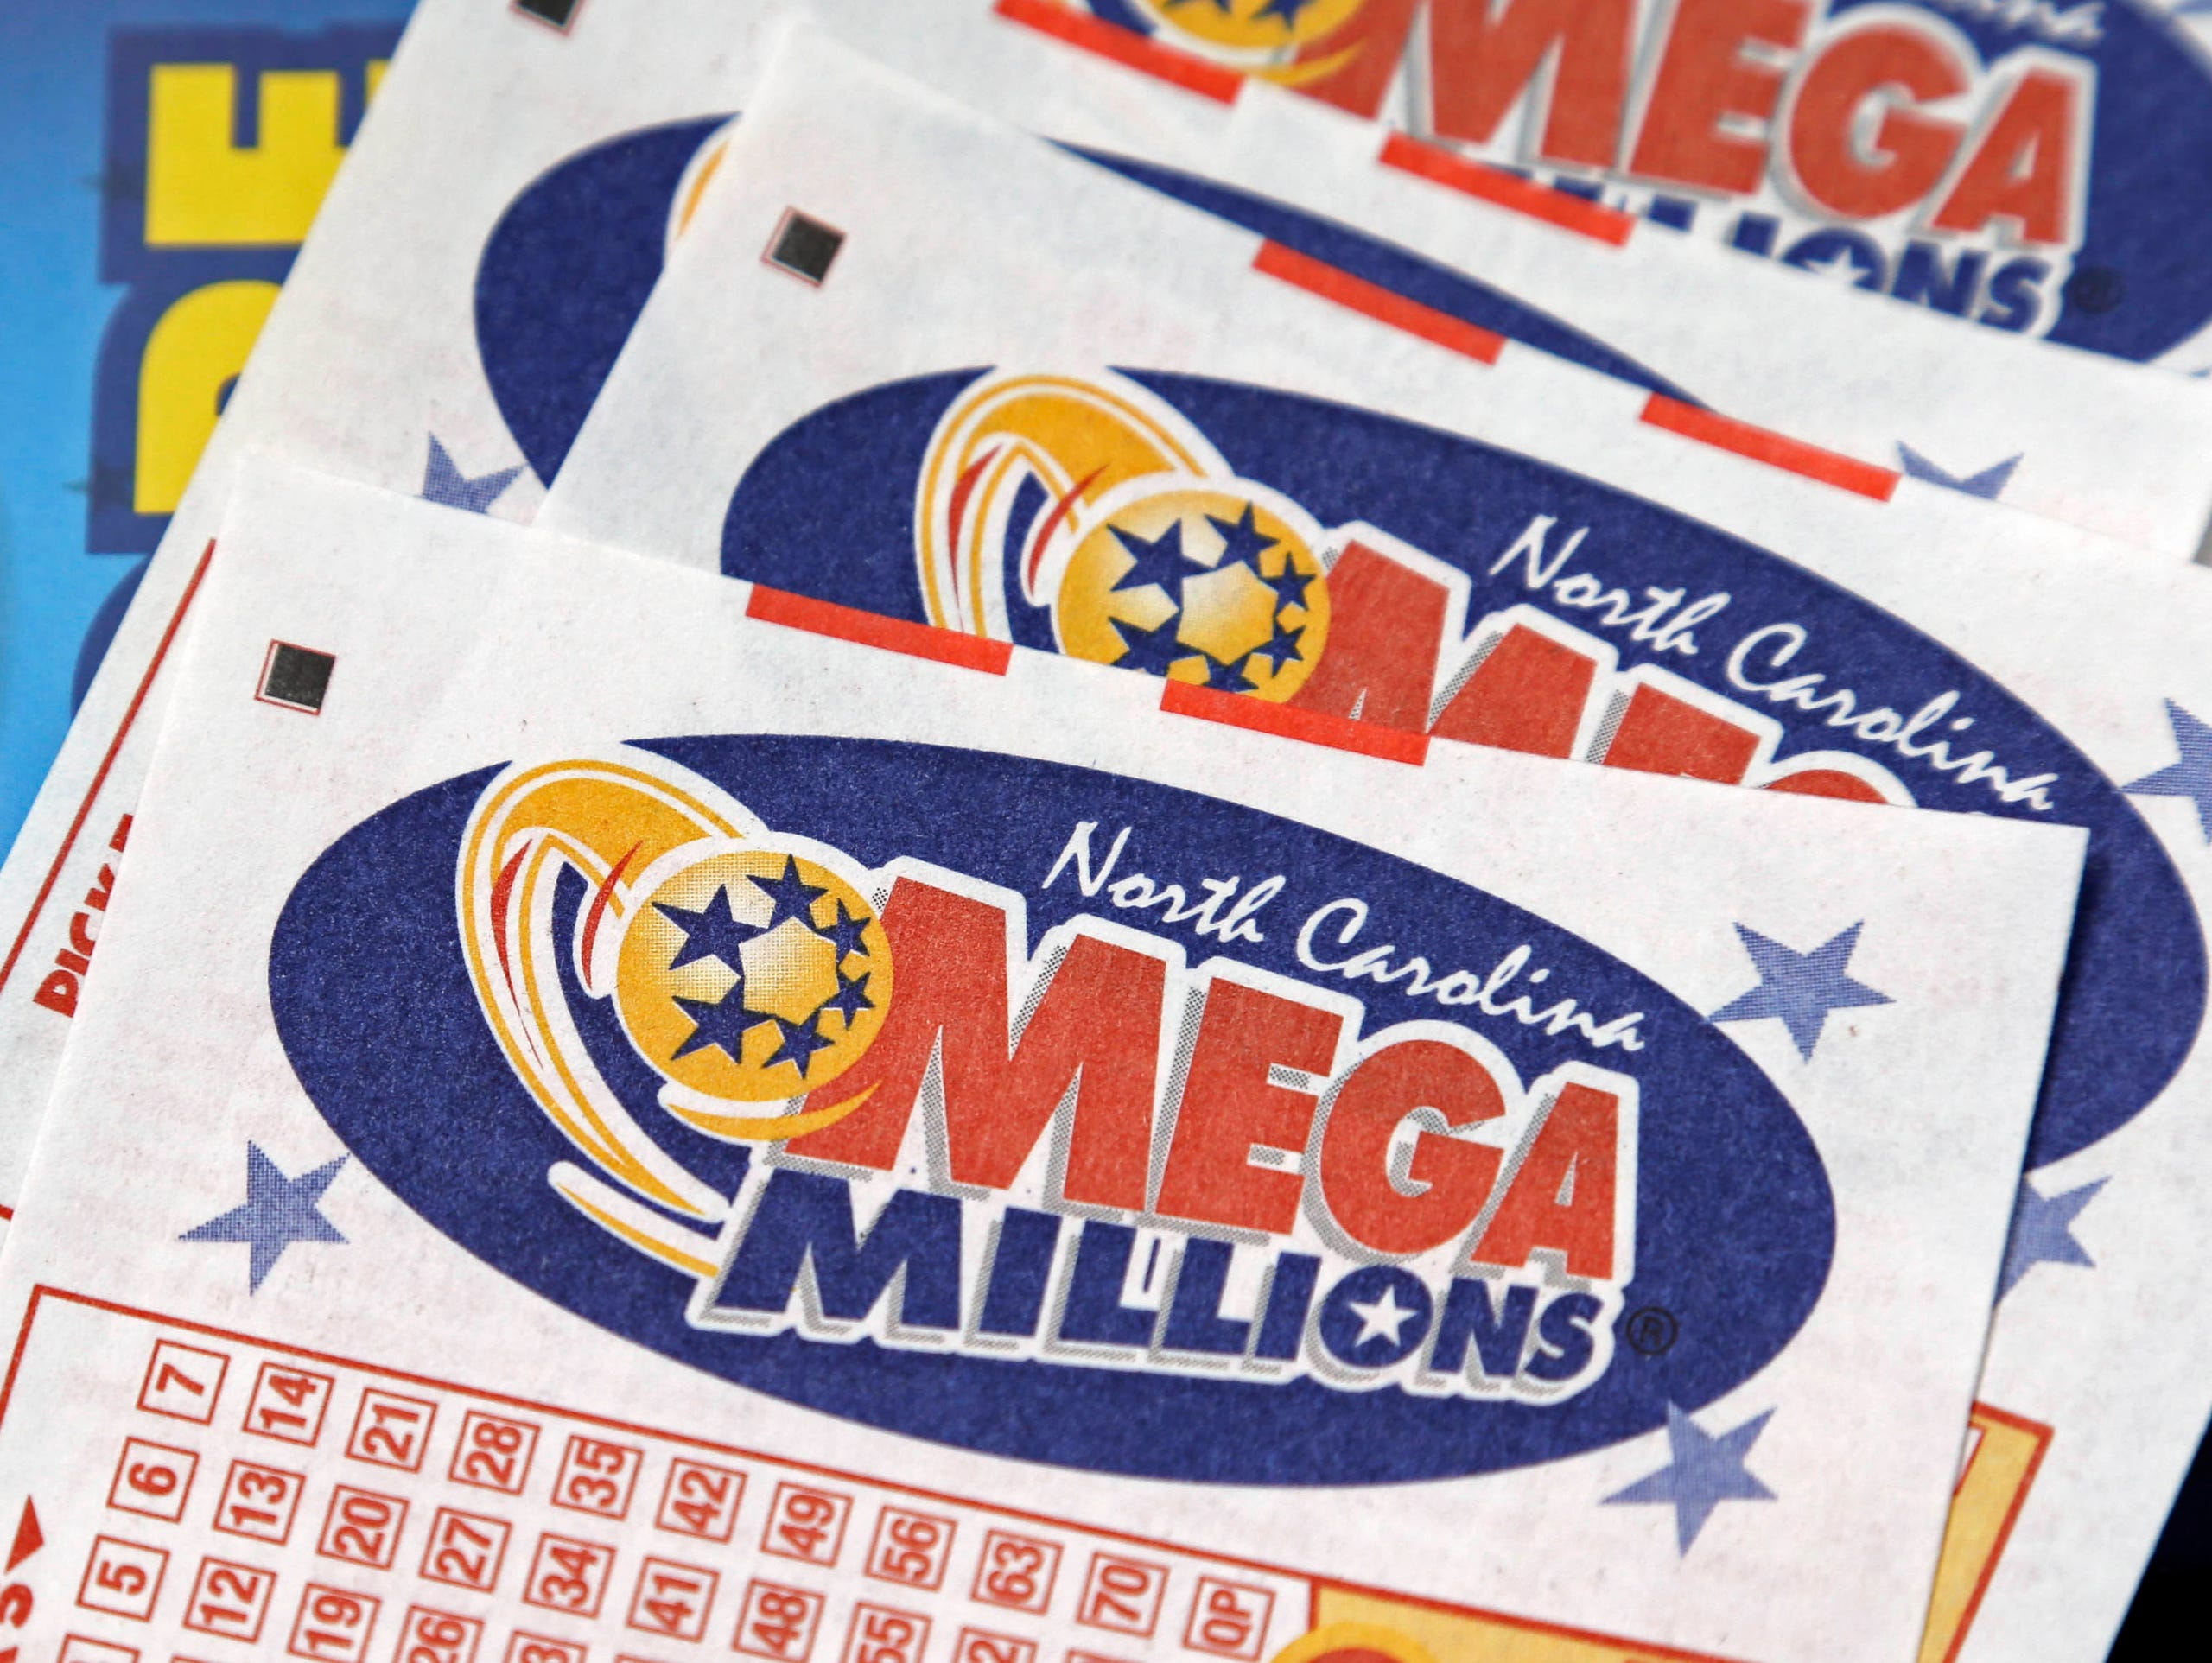 North Carolina Mega Millions lottery tickets rest on